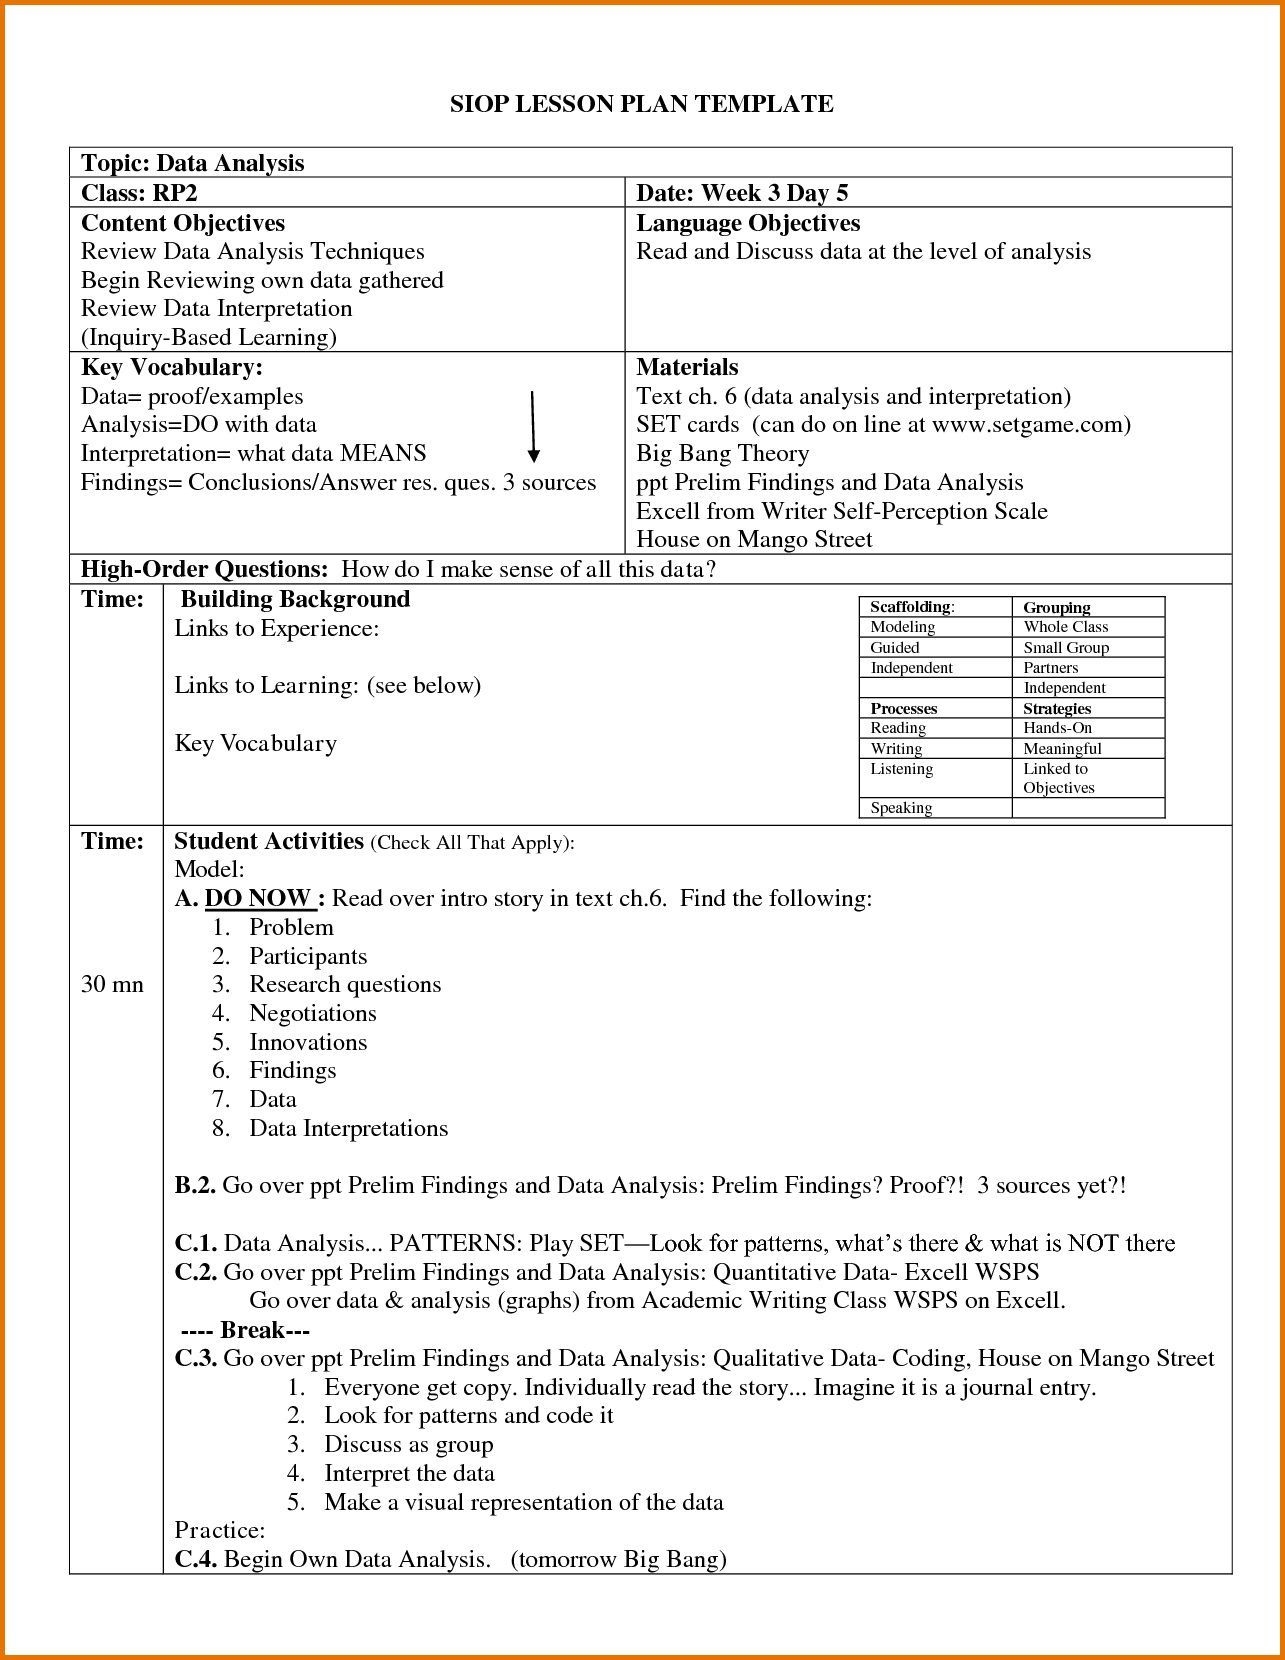 004 Archaicawful Siop Lesson Plan Template 1 High Def  Example First Grade Word Document 1stFull